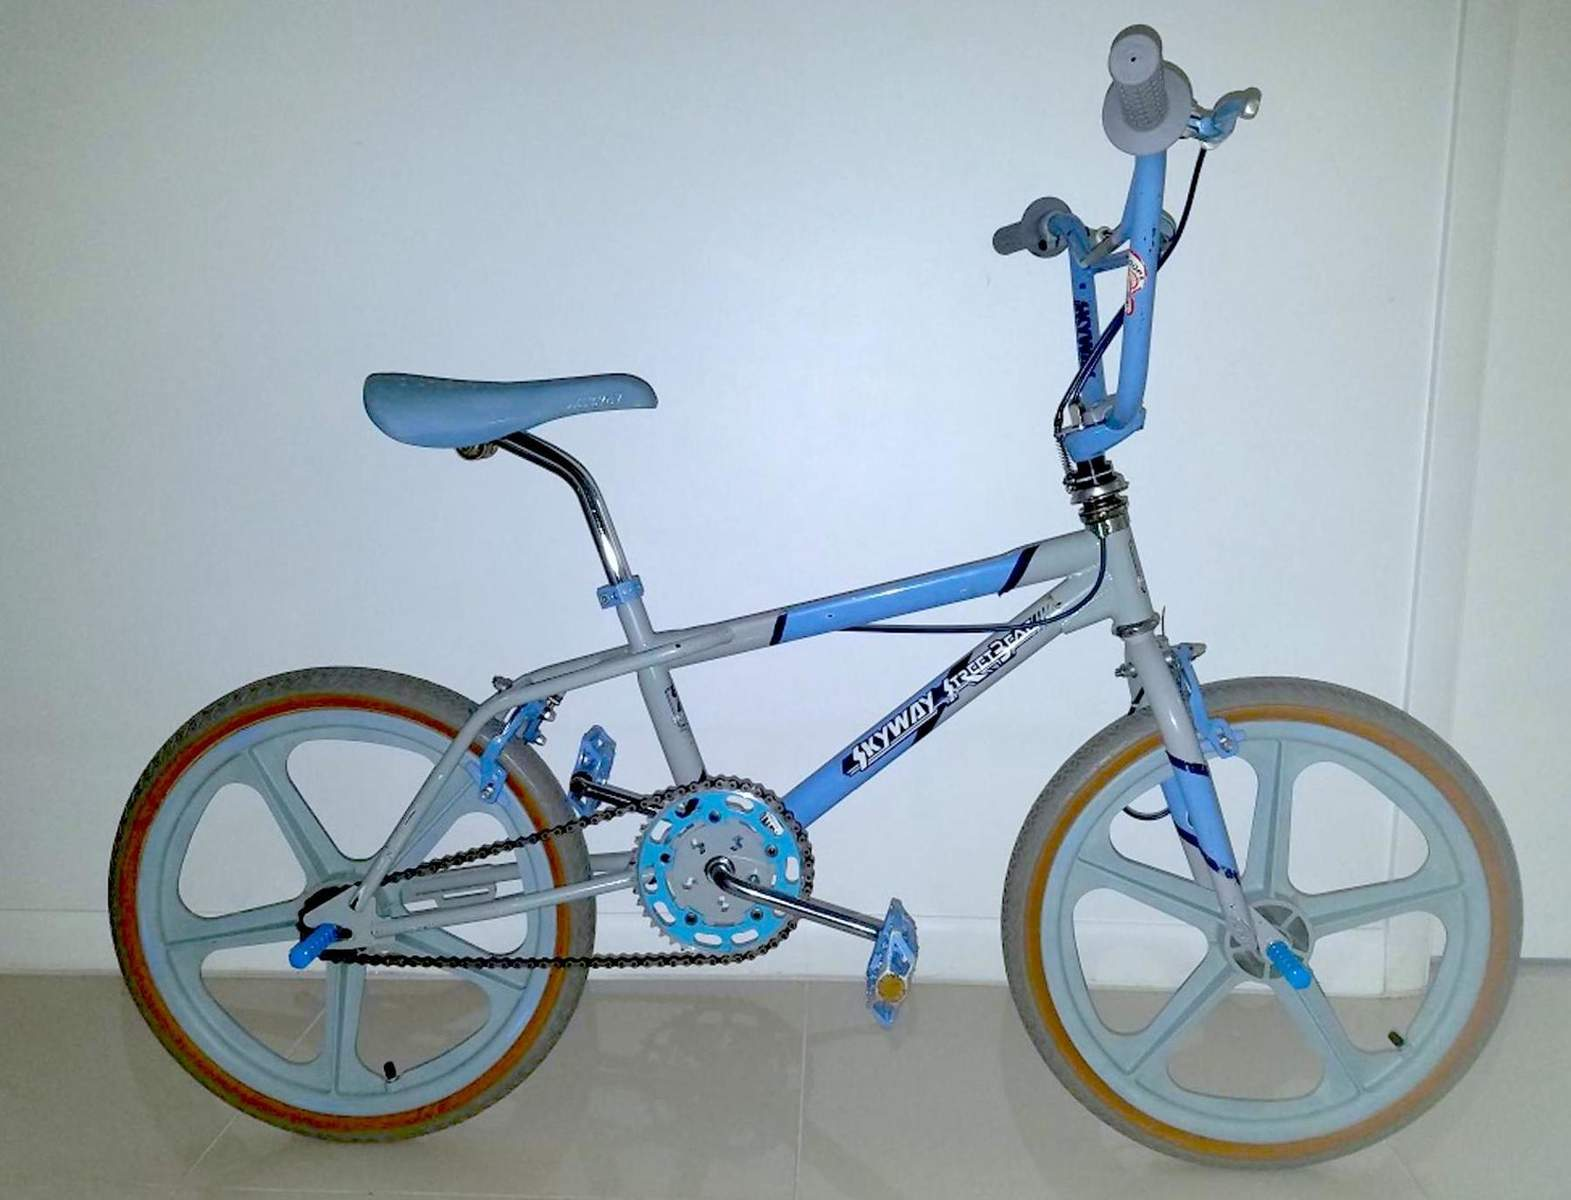 http://uploads.bmxmuseum.com/user-images/36359/beat59e0e6f6aa_blowup5a9361c0ae.jpg